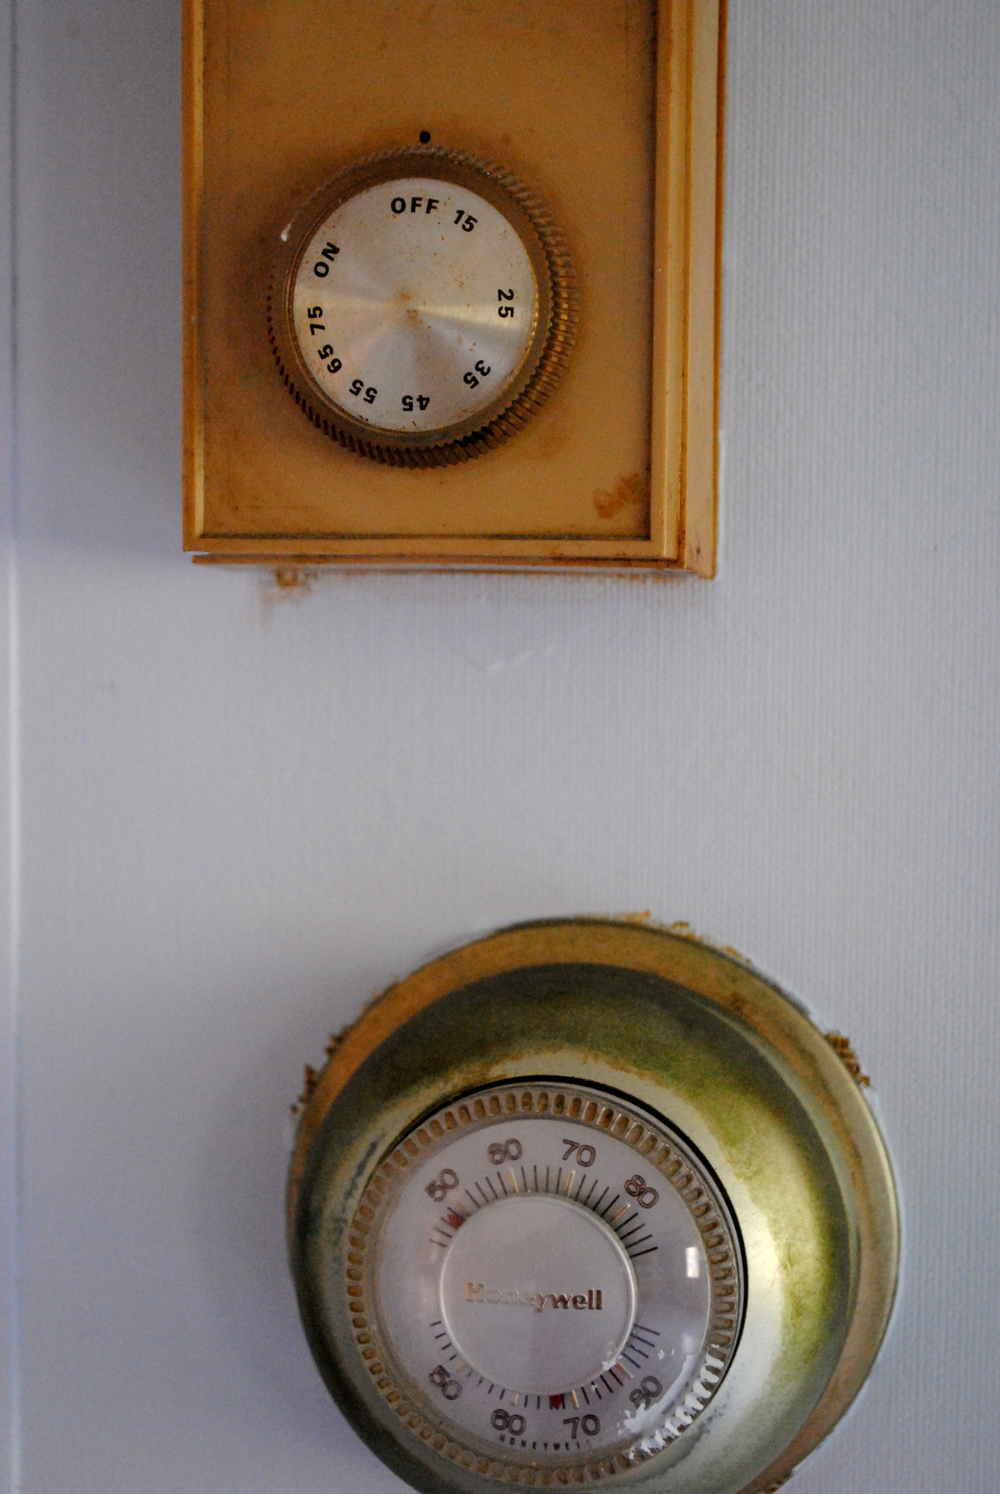 The very old, though still functional, thermostat in the 1900 farmhouse.